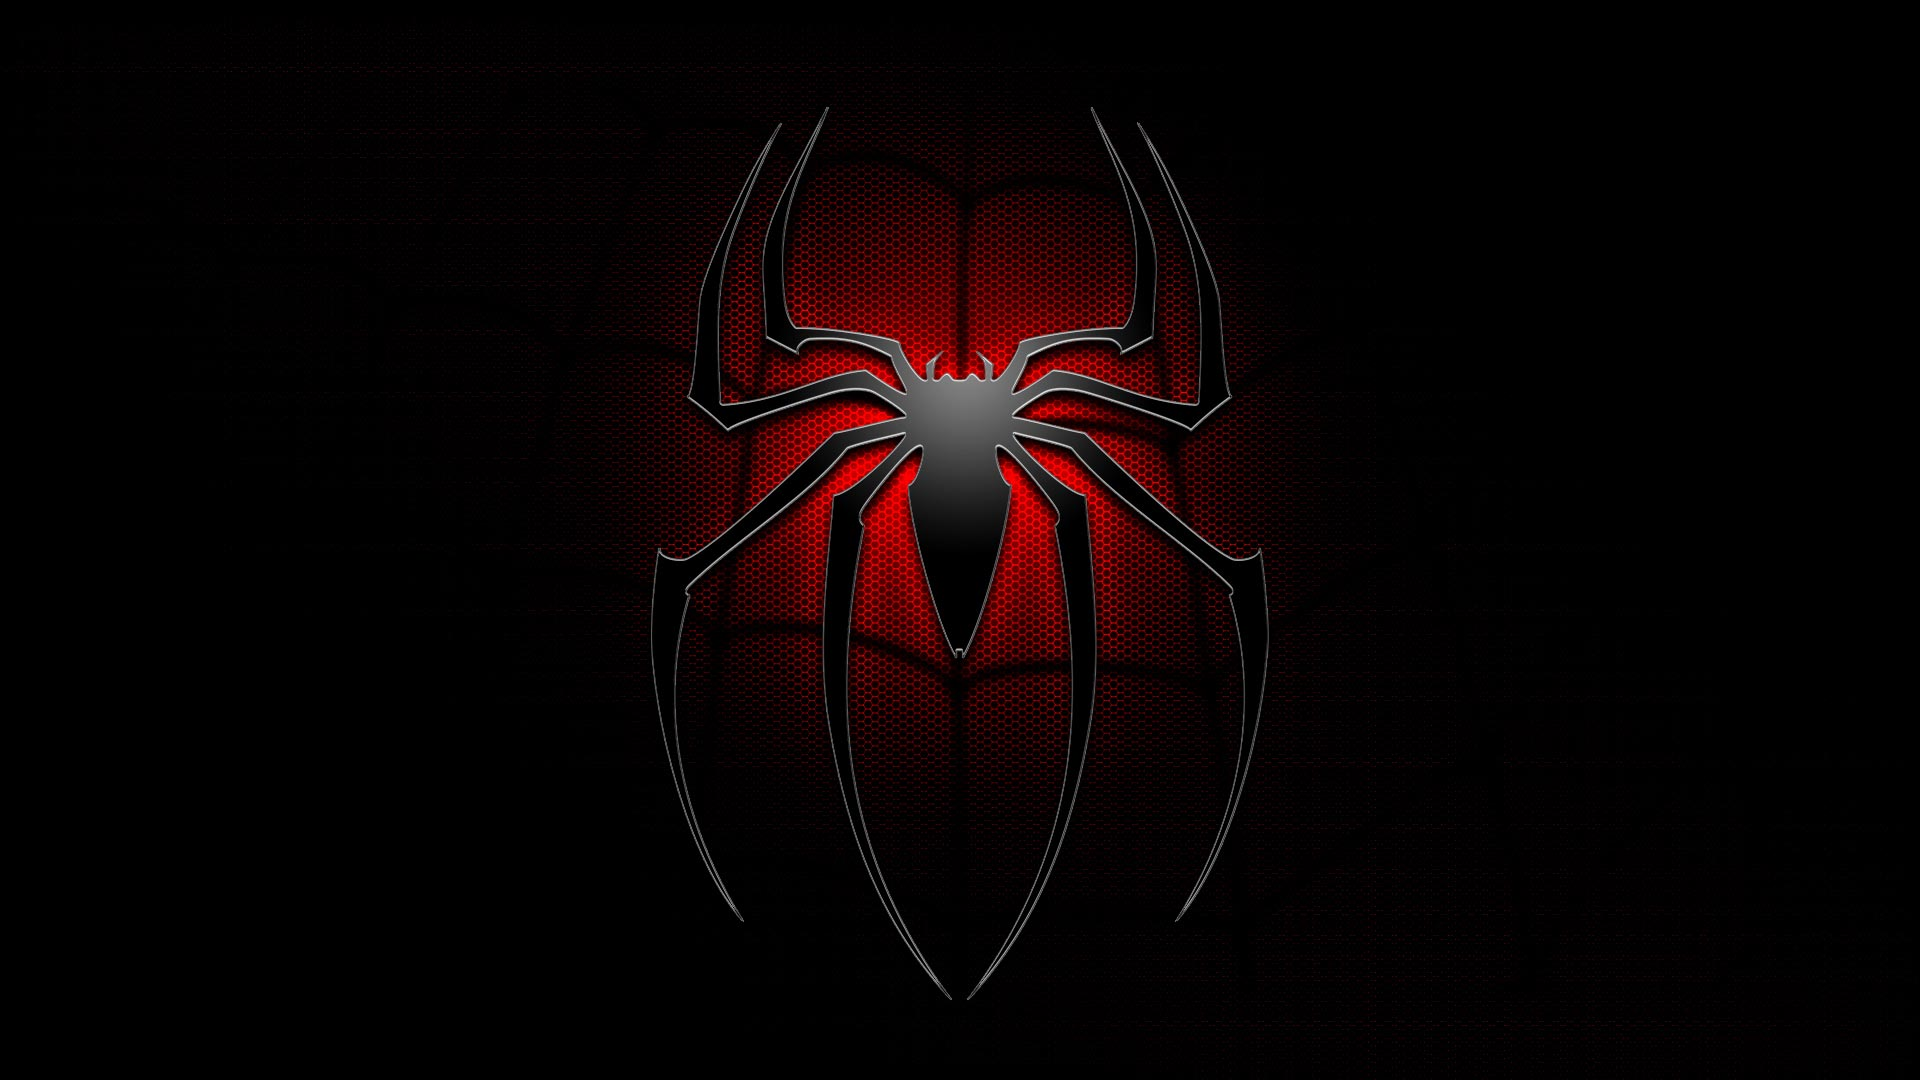 Cool Spiderman Logo wallpaper | 1920x1080 | #27645